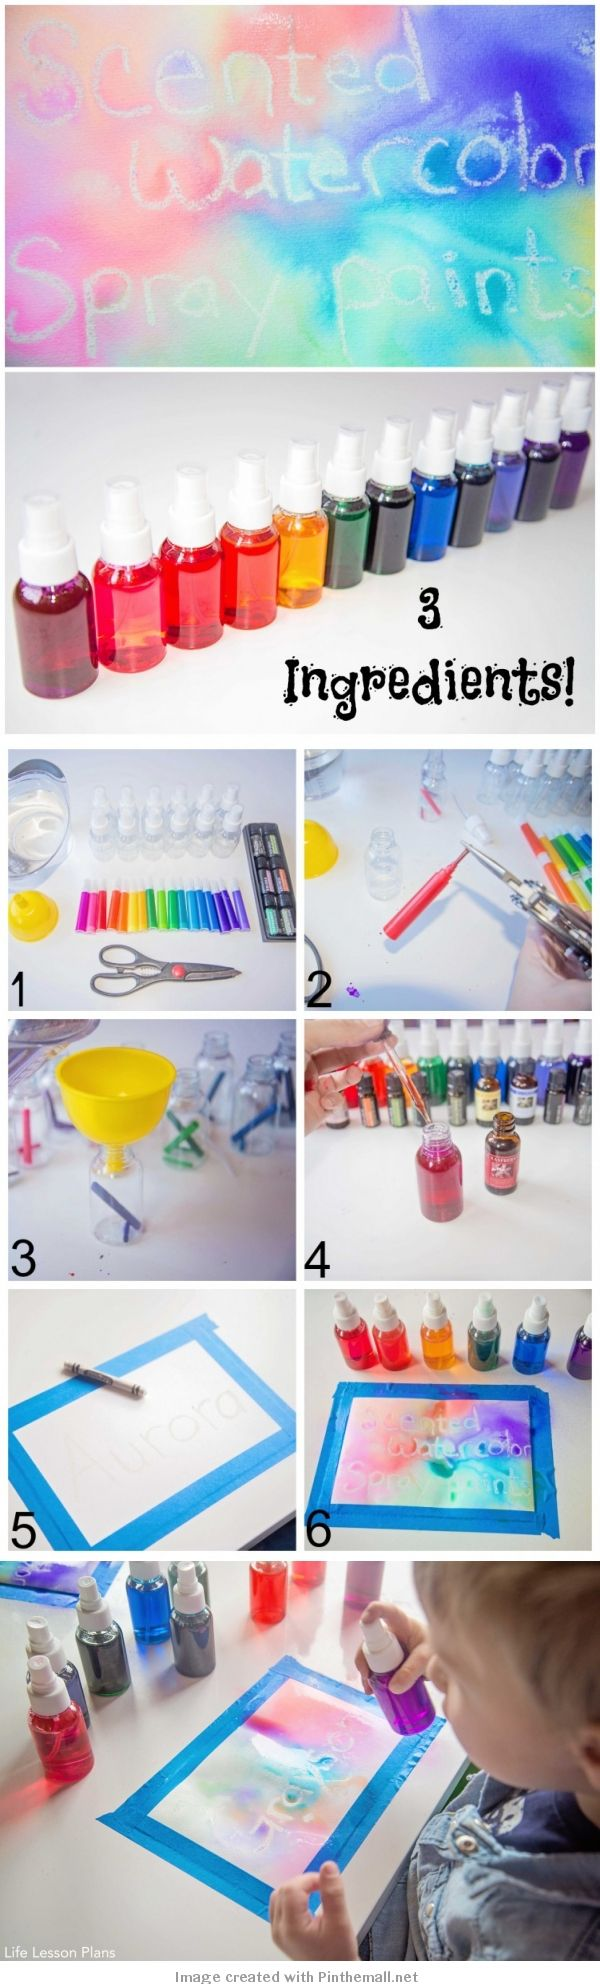 Scented Watercolor Spray Paints - I love making homemade art supplies! We go through them so quickly that it has become a much more economical option for us. There are so many fun materials we want to try, so it has been really interesting learning how to make our own. This morning we added scented liquid watercolors to our repertoire of DIY art materials!